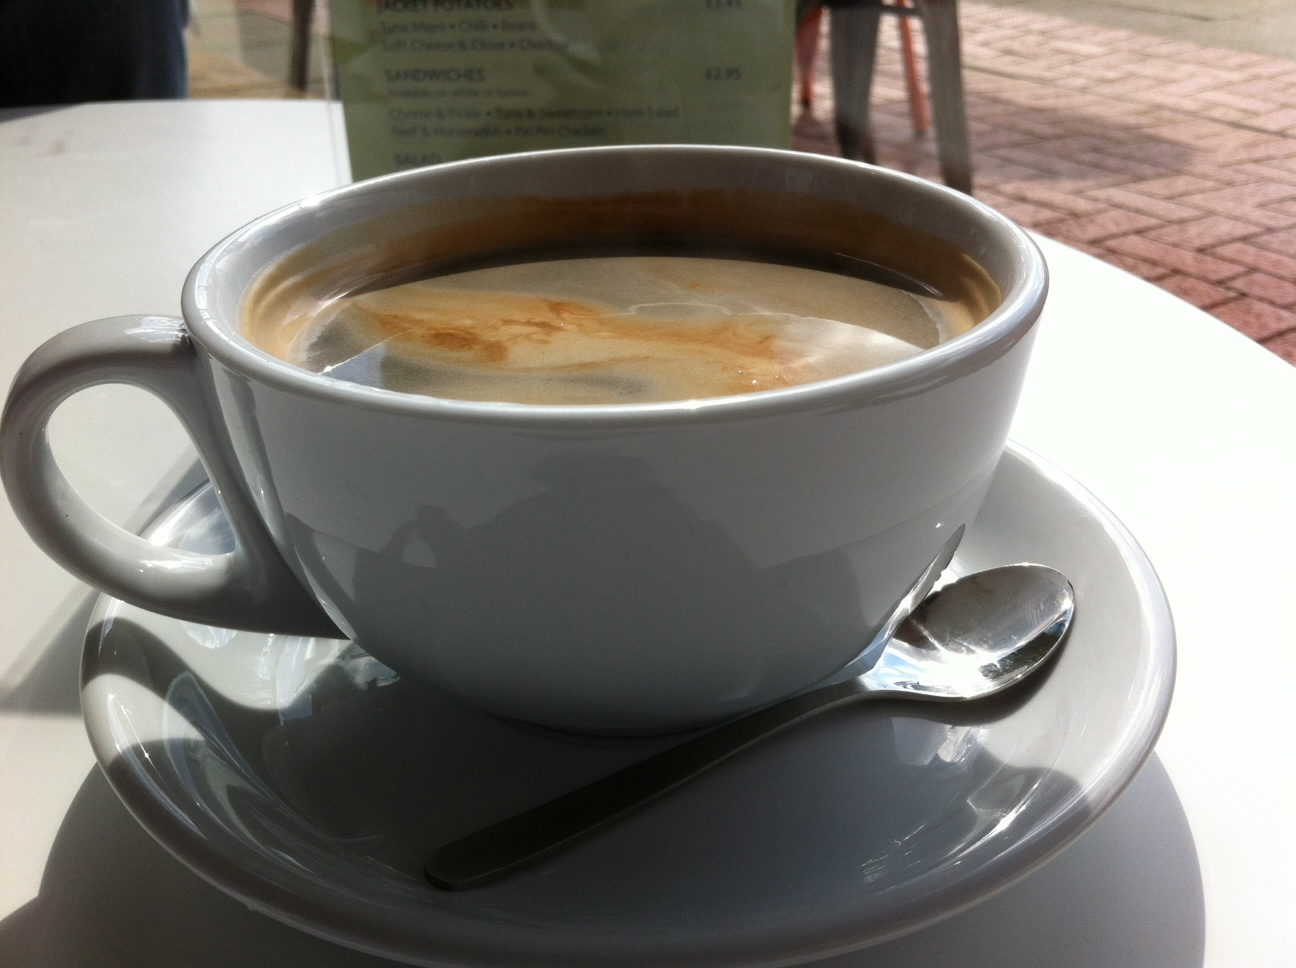 Both Myself and Mr Gourmand had an americano coffee, surprisingly many ...